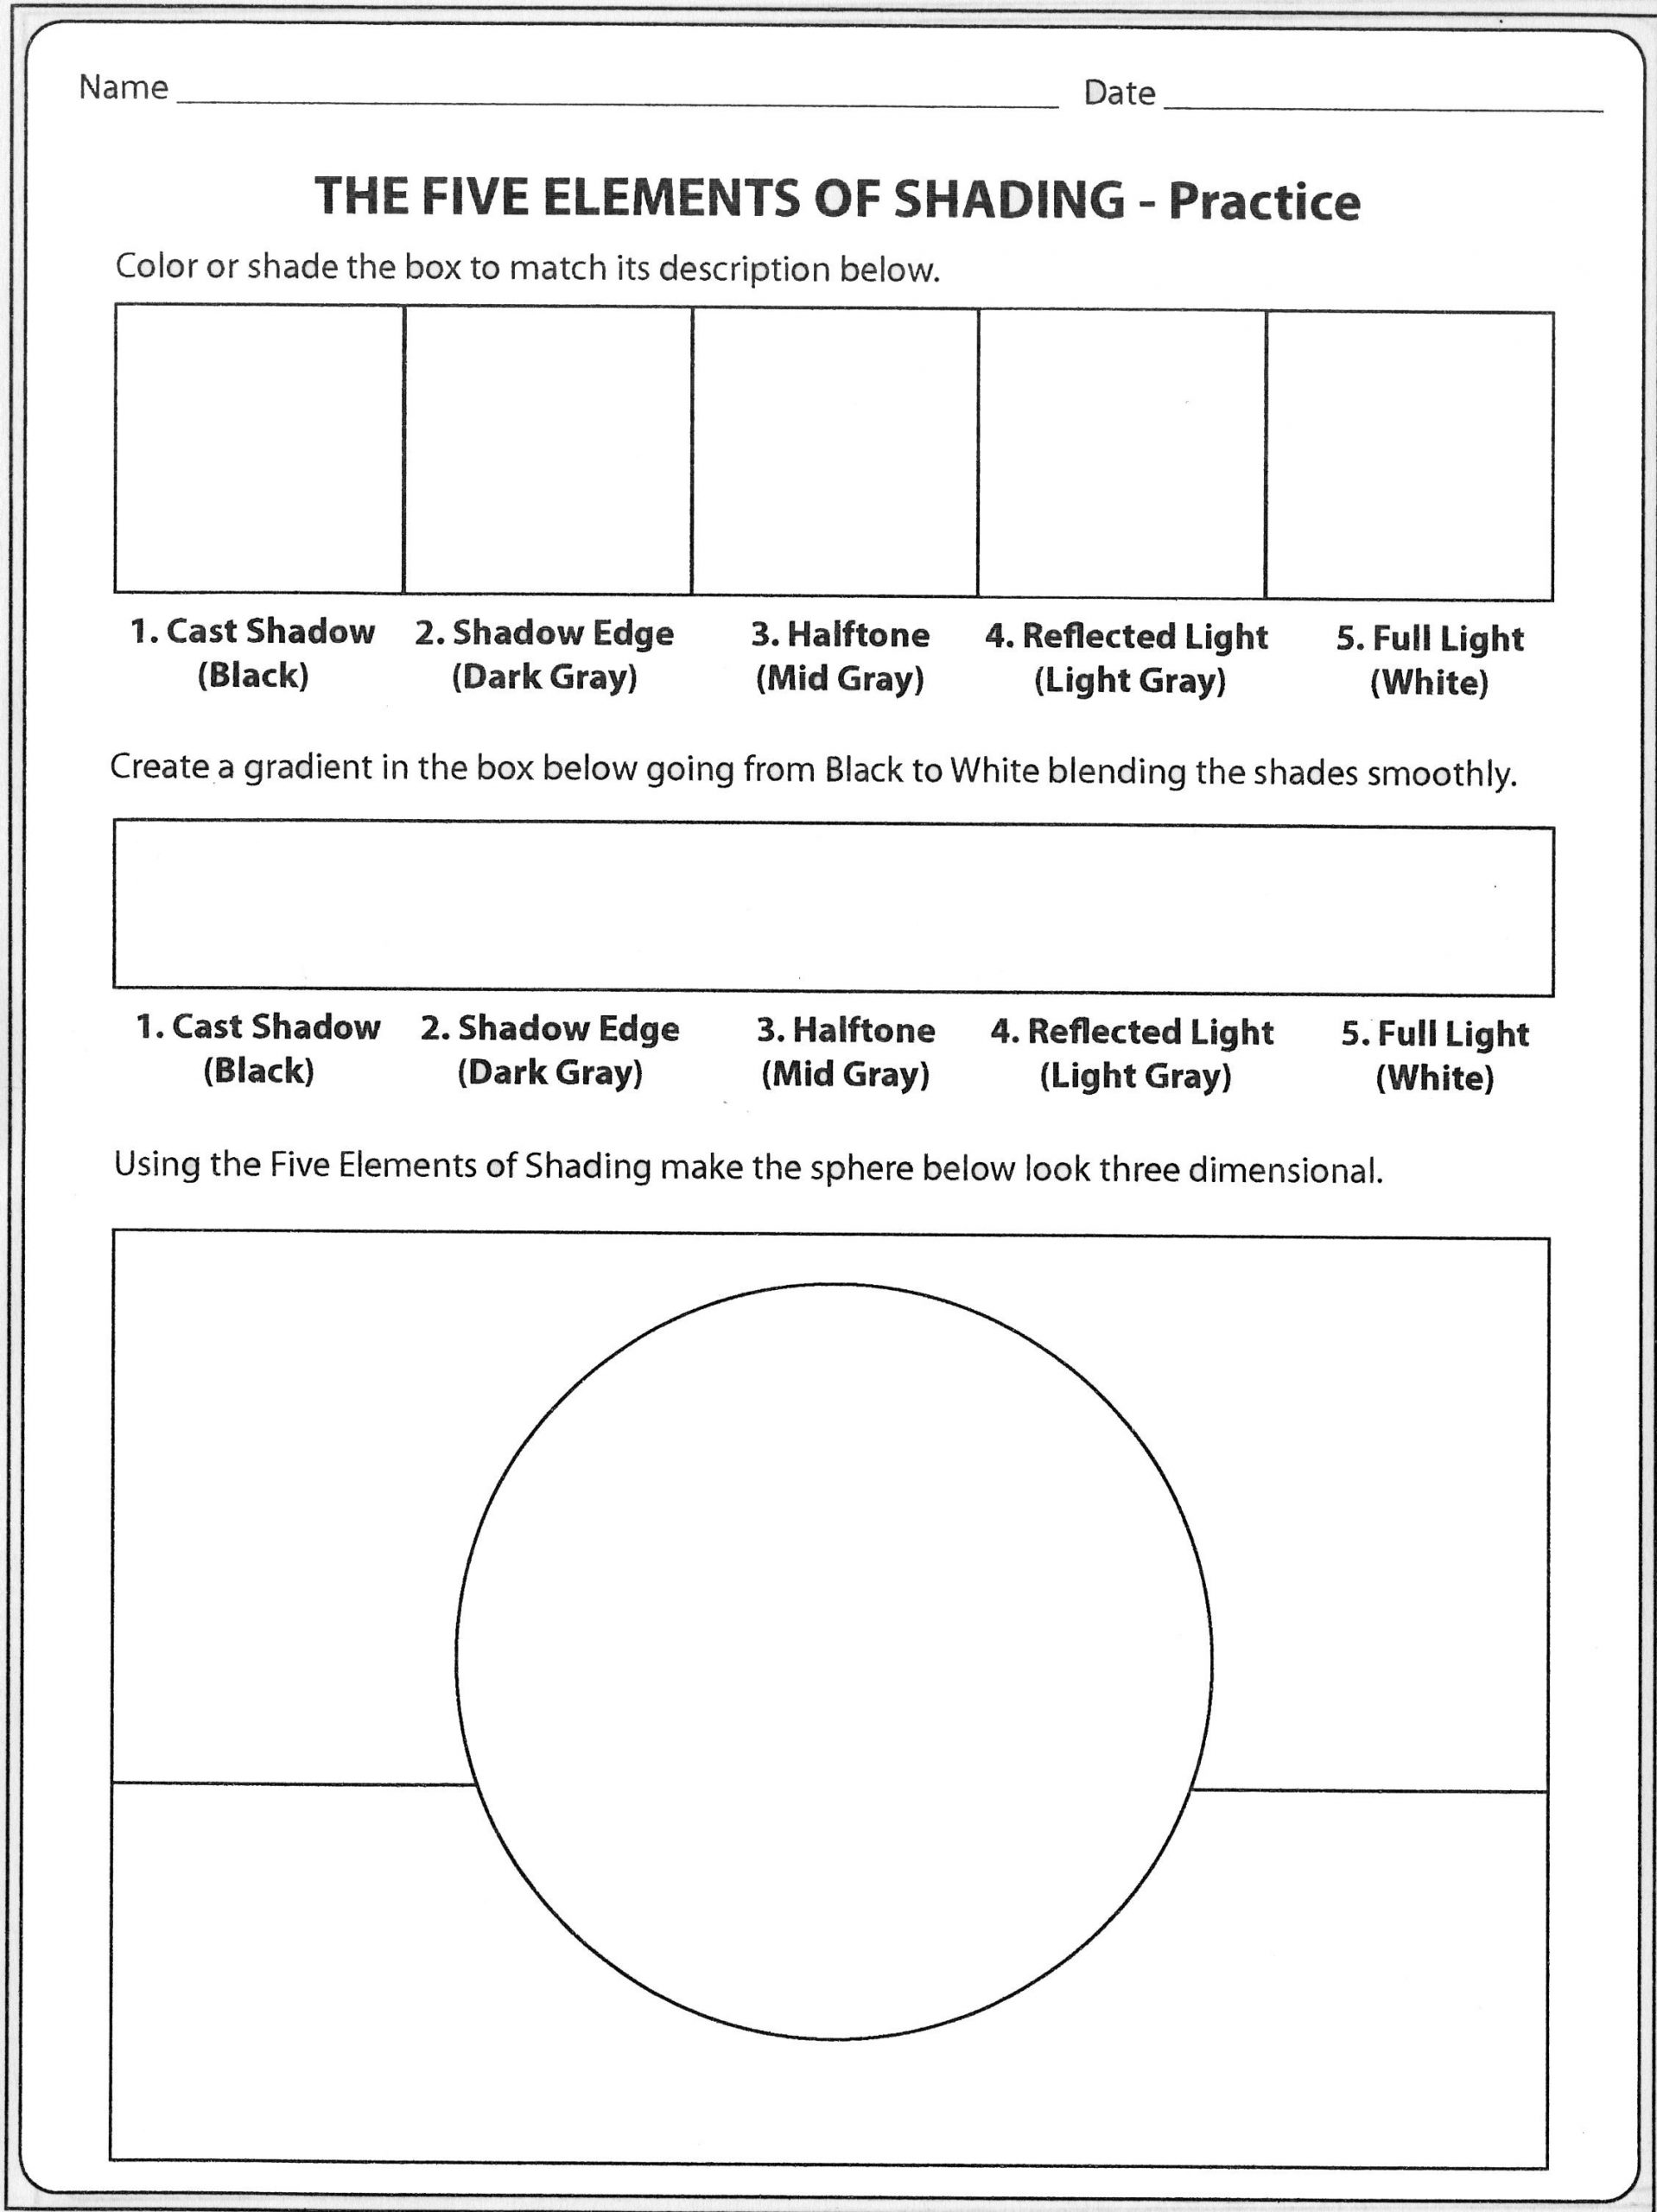 Mood Worksheets for Middle School formshading Practicesheet Pt1 2256—3011